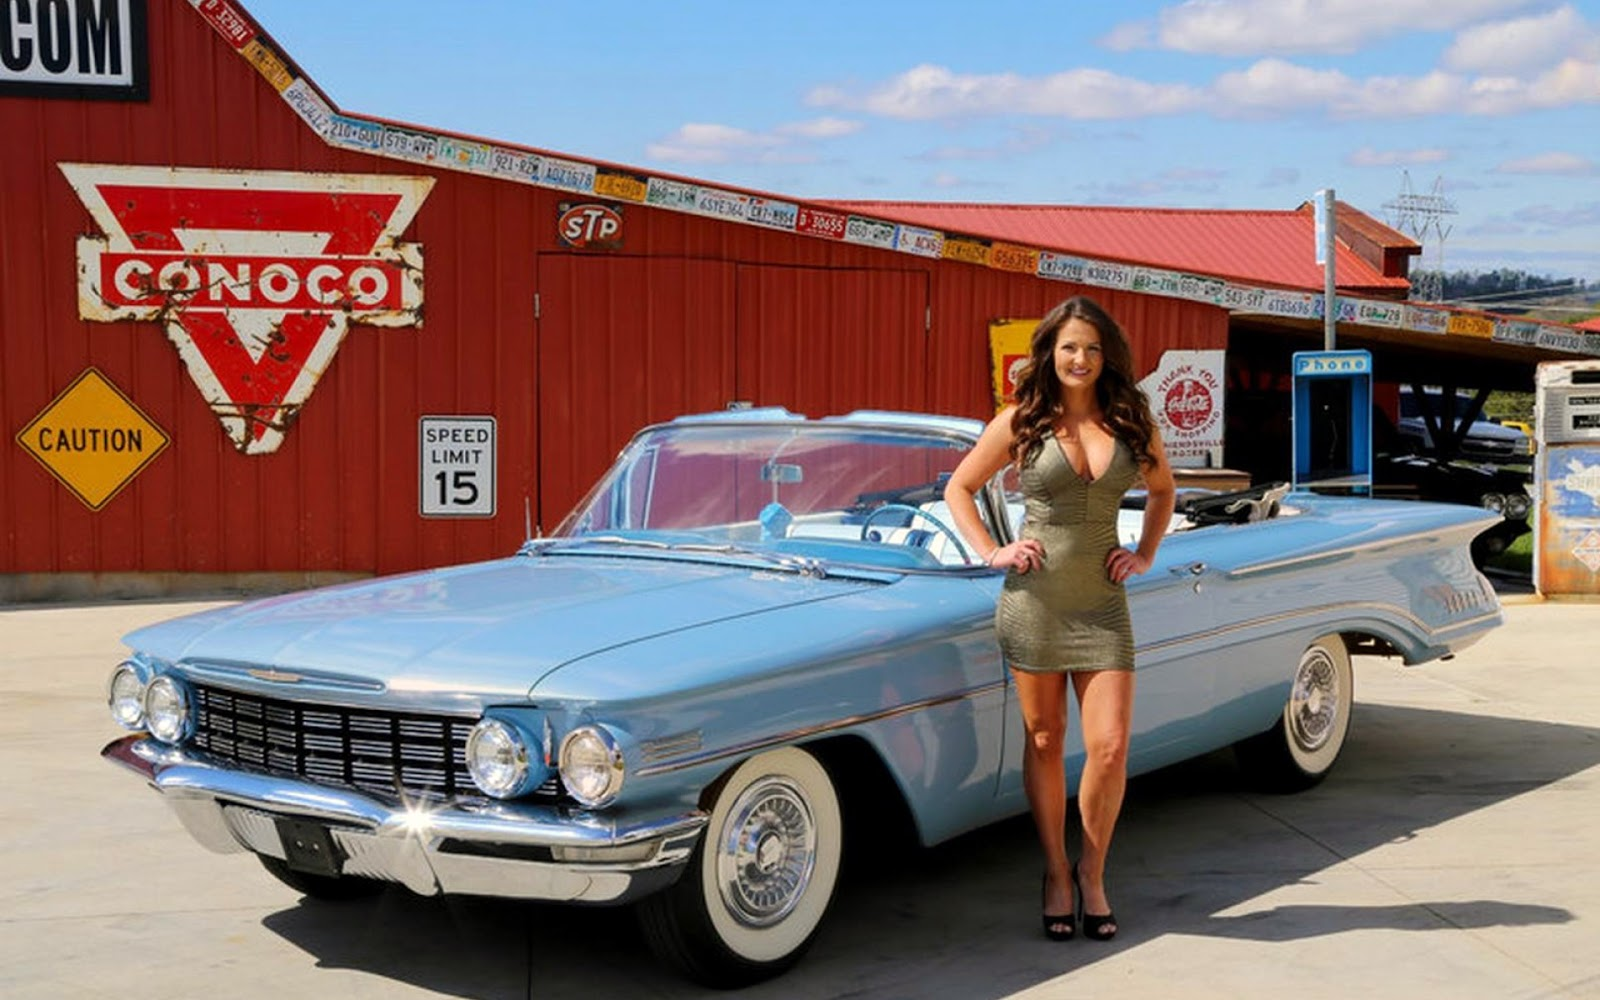 transpress nz: 1960 Oldsmobile Super 88 Convertible